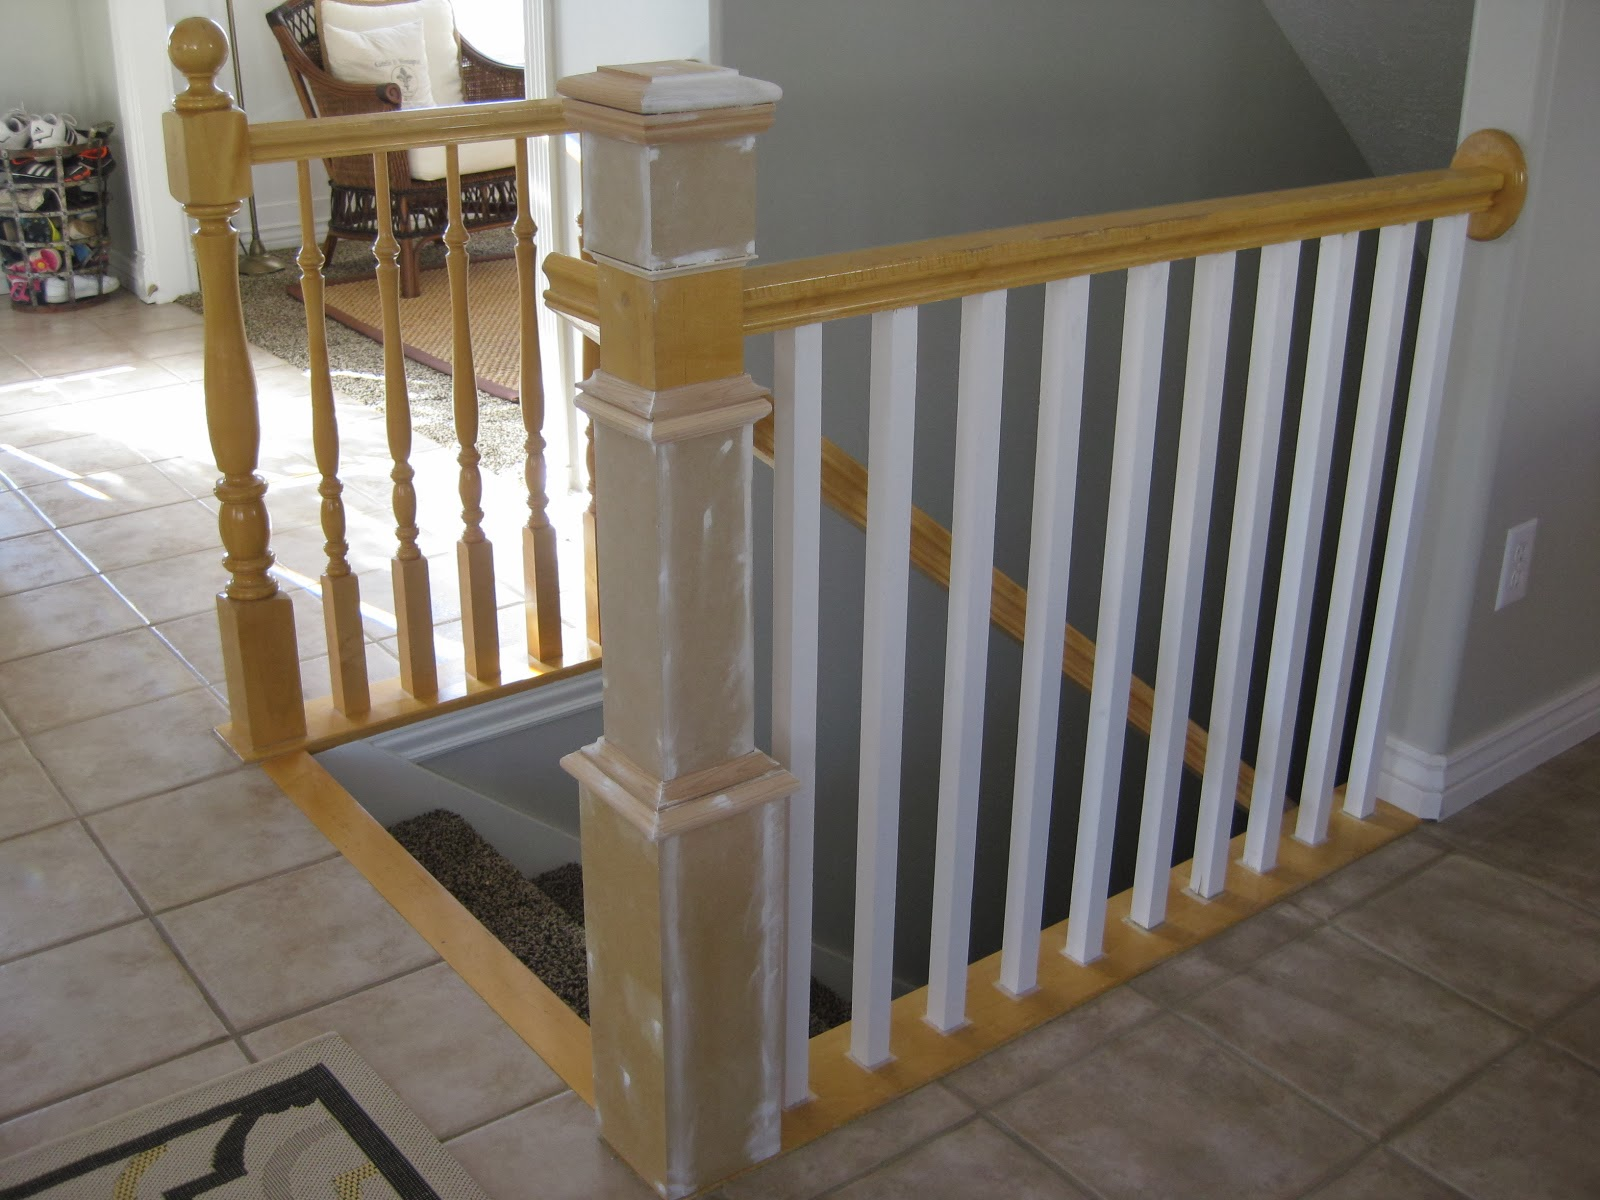 Replace Stair Banister Spindles And Newel Post DIY   TDA Decorating And  Design Featured On @